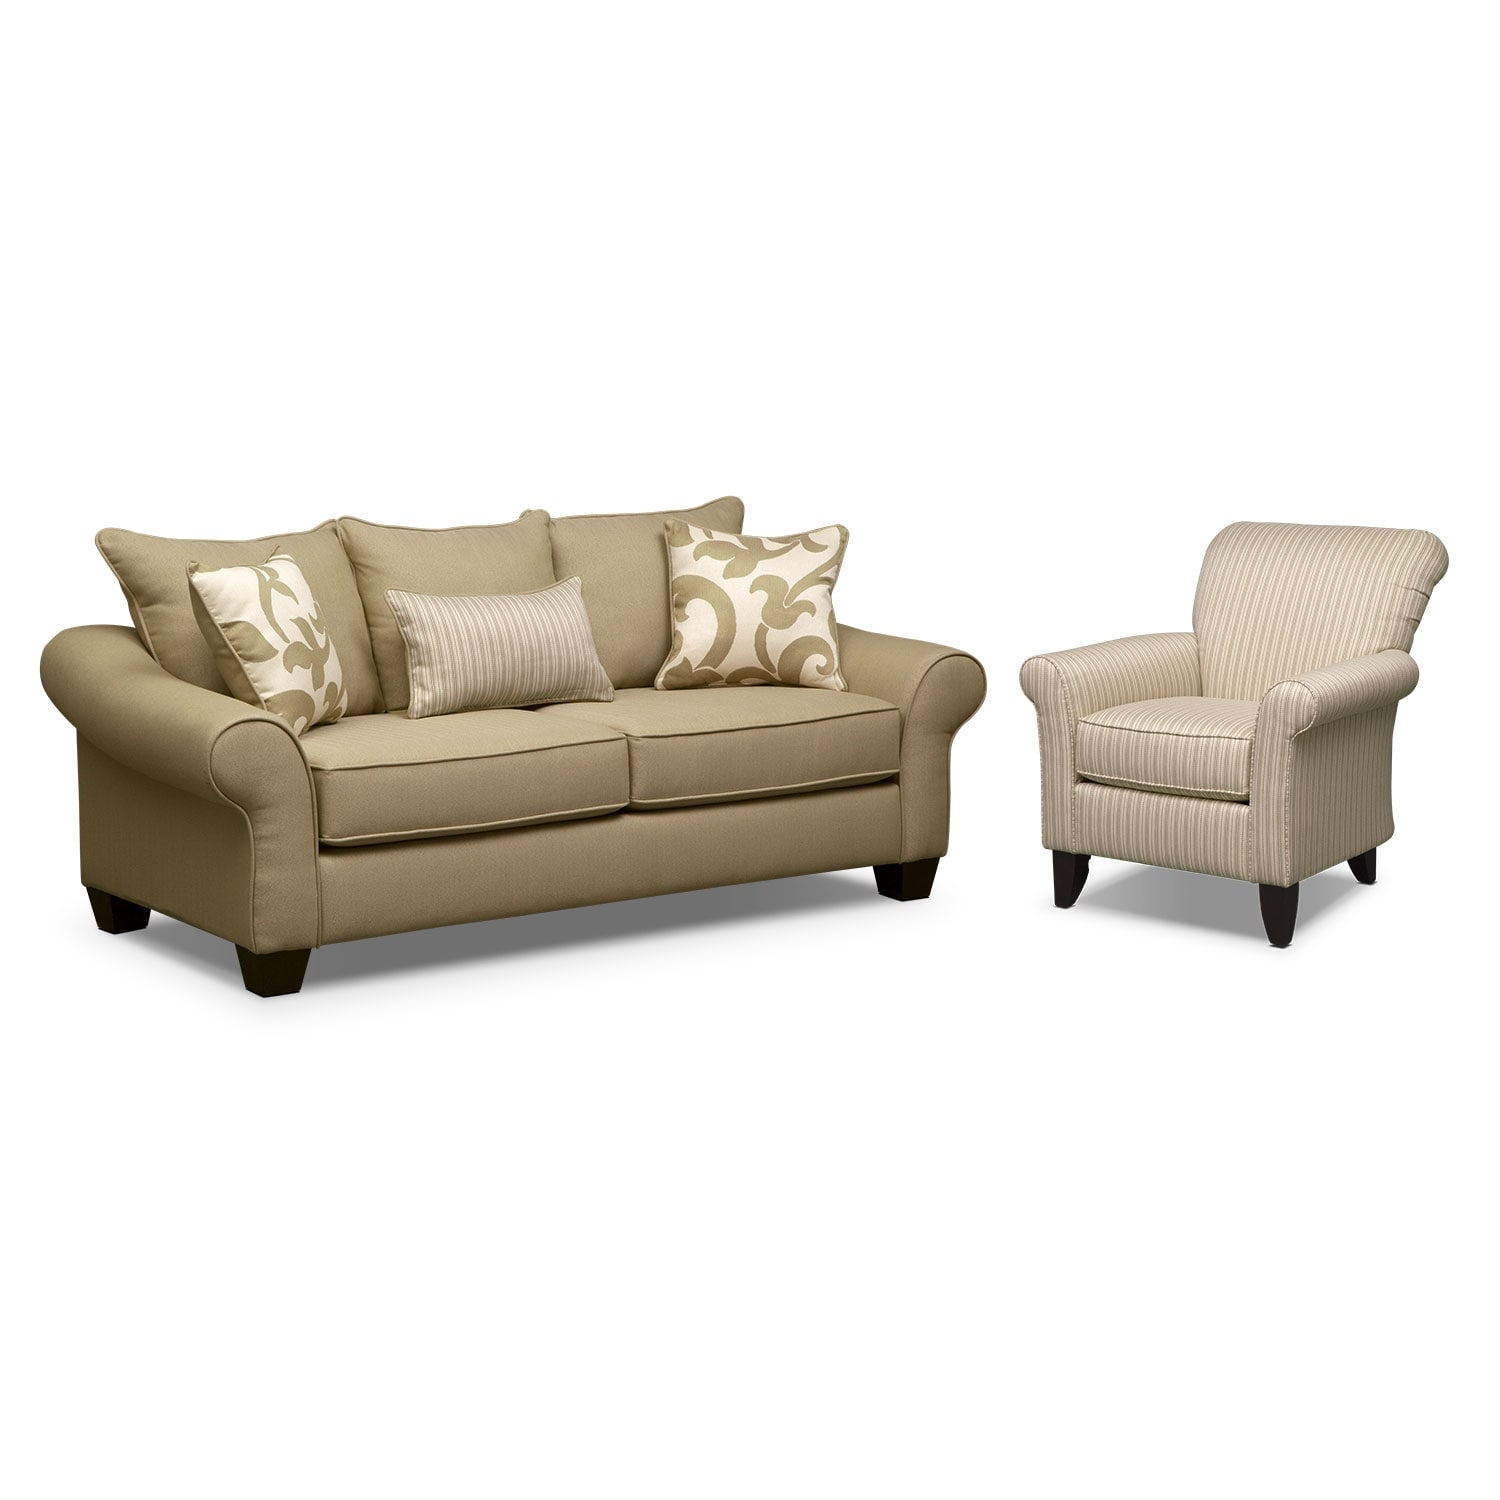 Living Room Furniture - Colette Khaki 2 Pc. Living Room w/ Accent Chair